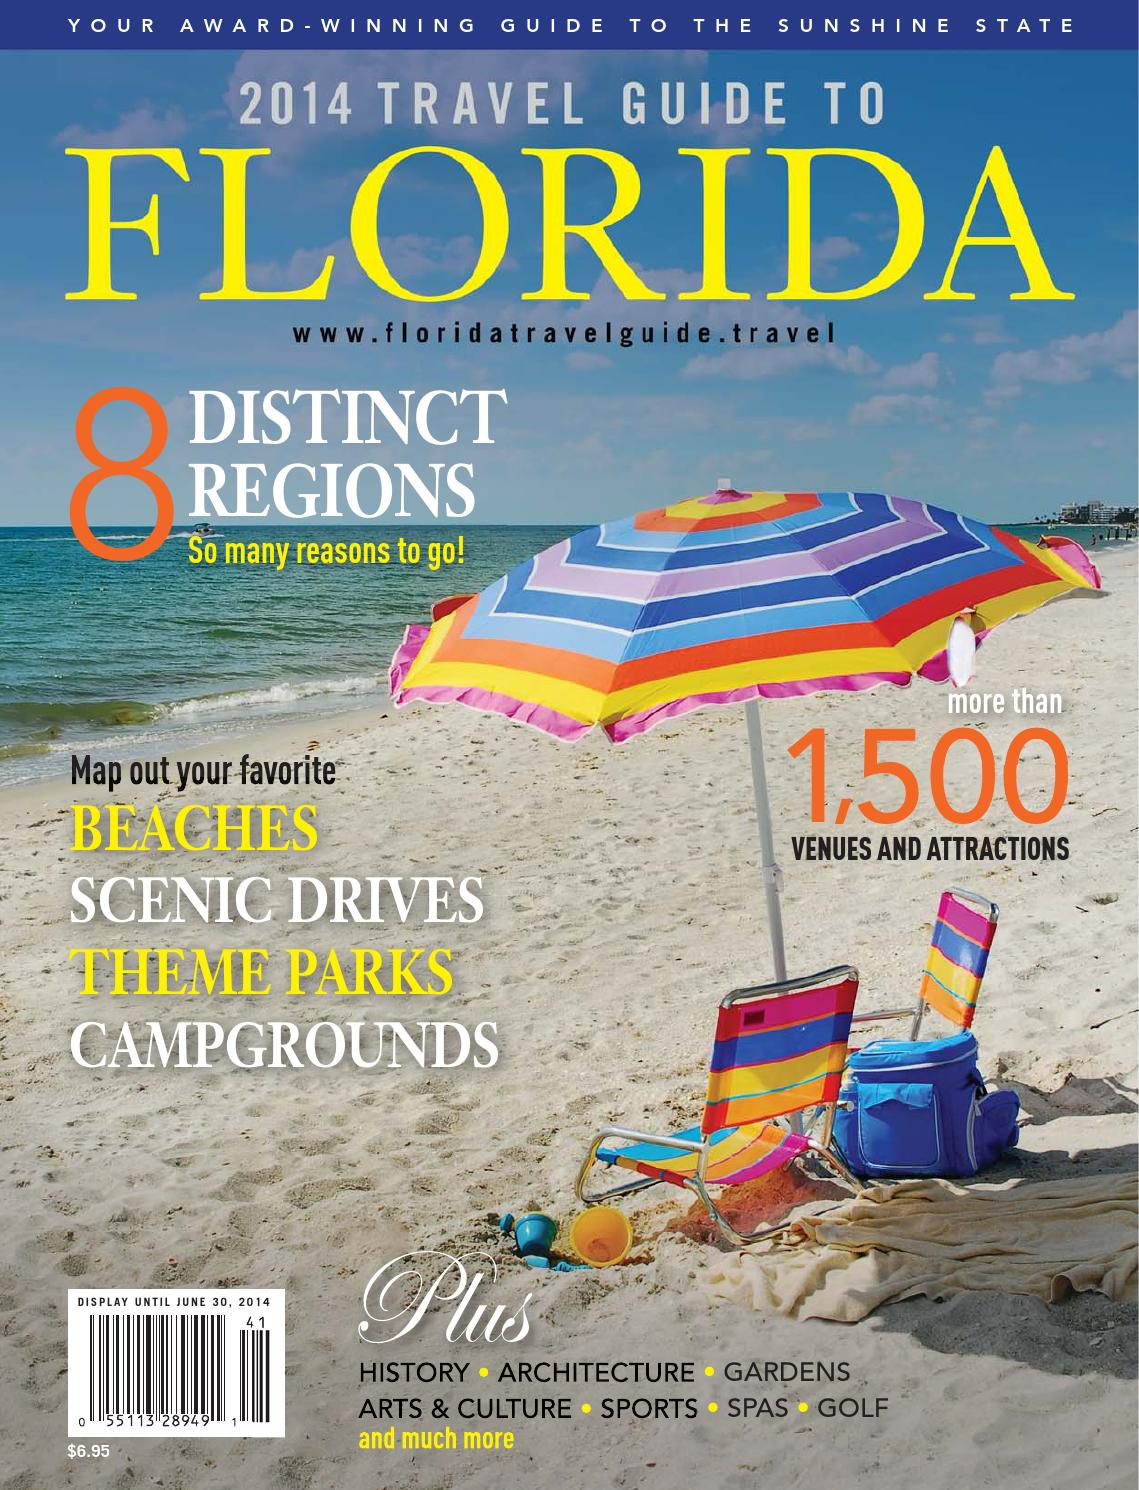 2014 travel guide to florida by markintoshdesign - issuu